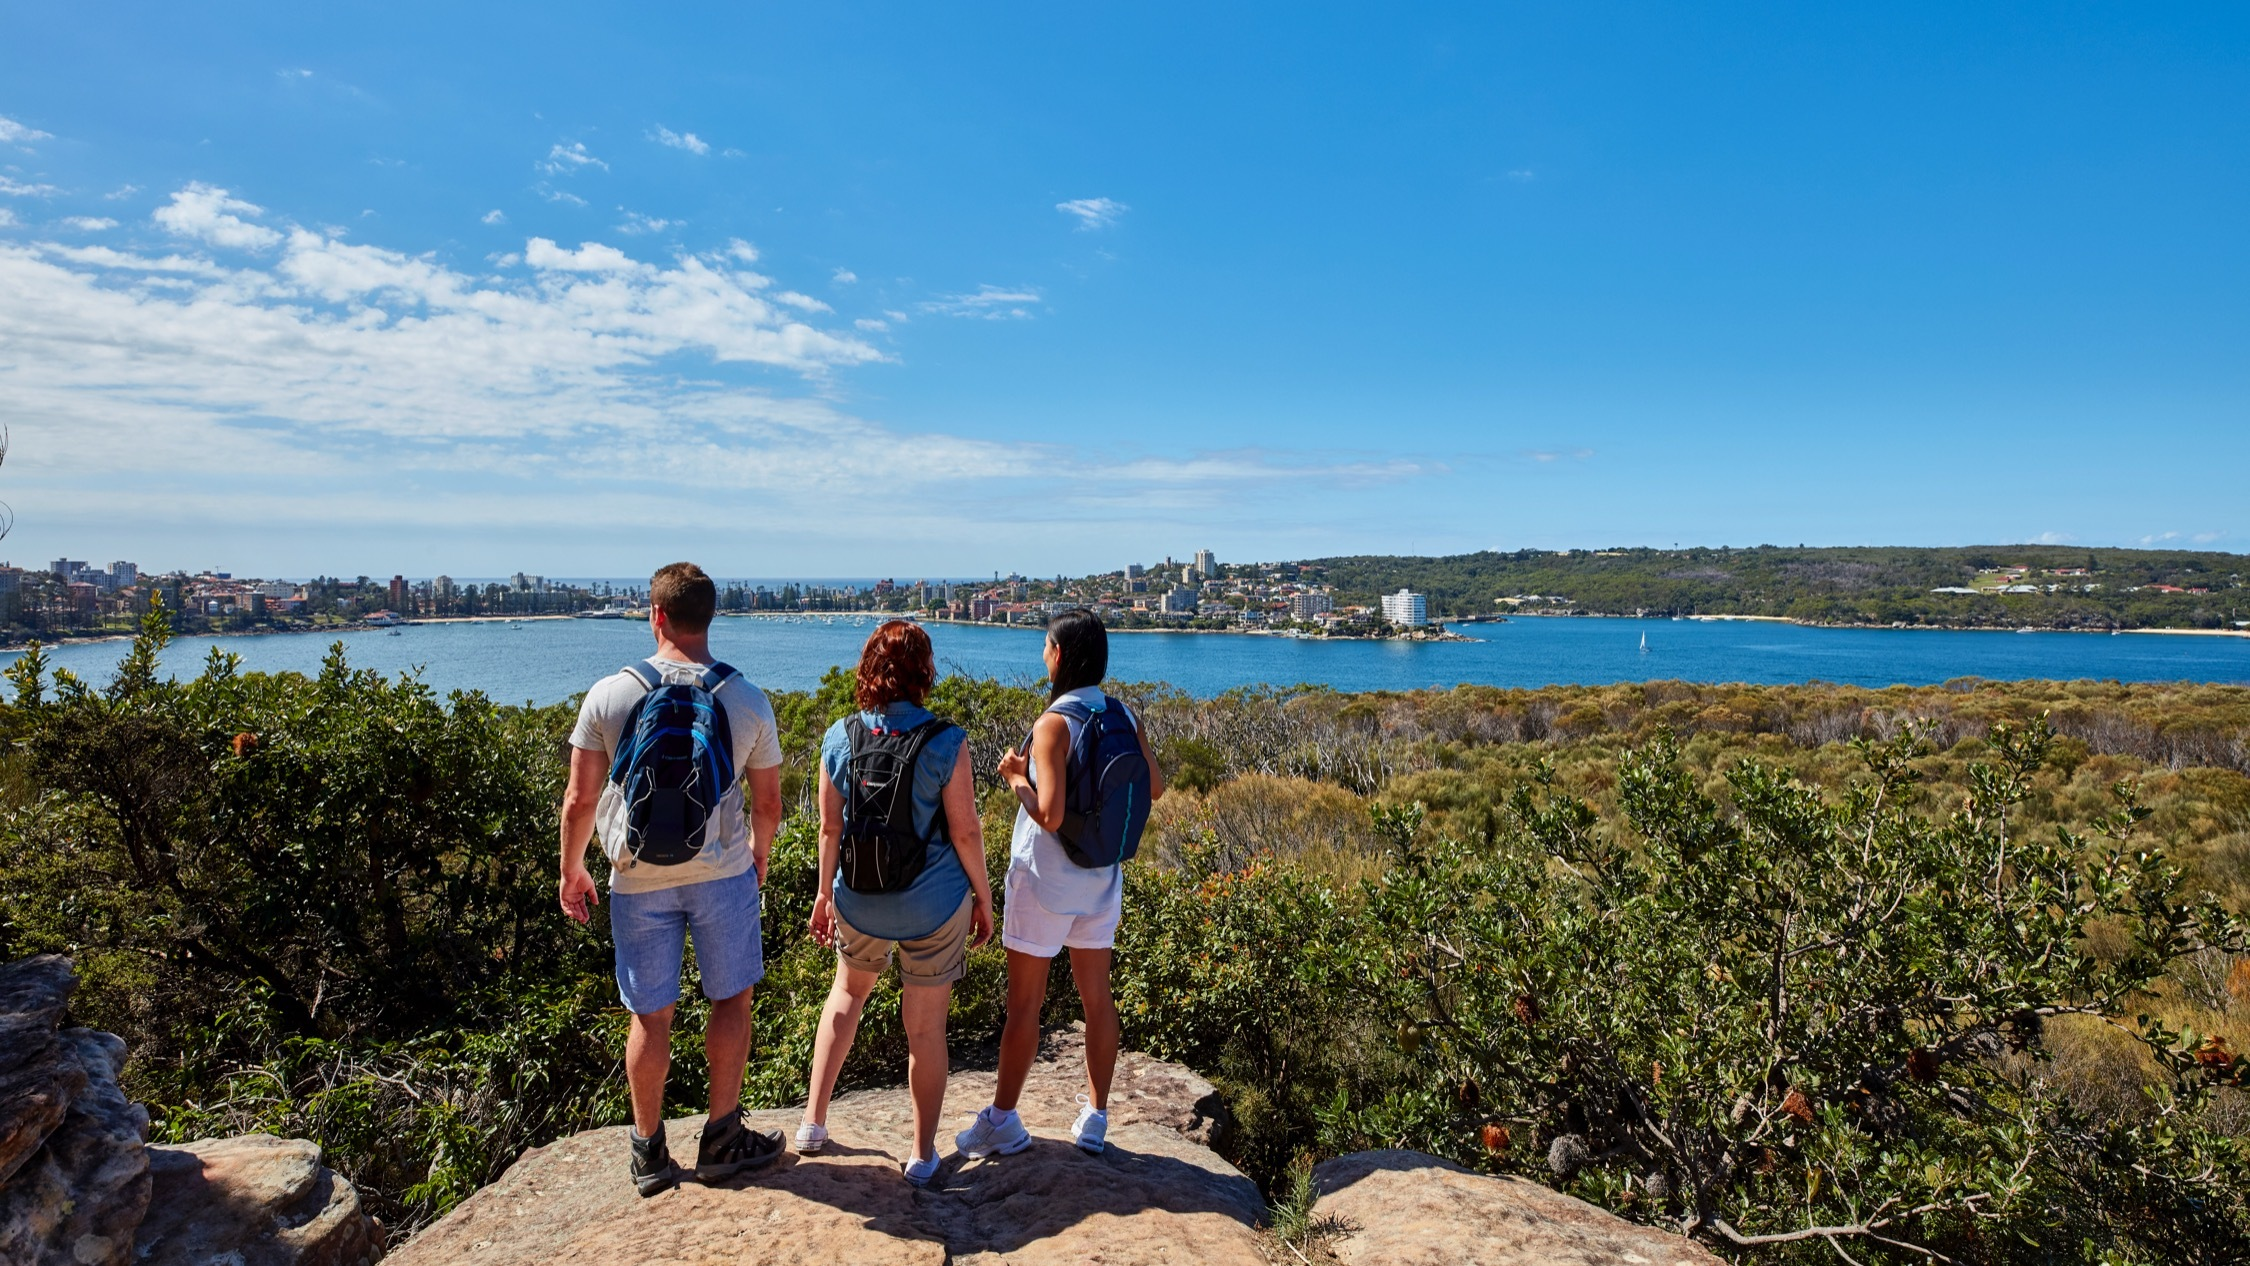 Manly to Spit coastal walk